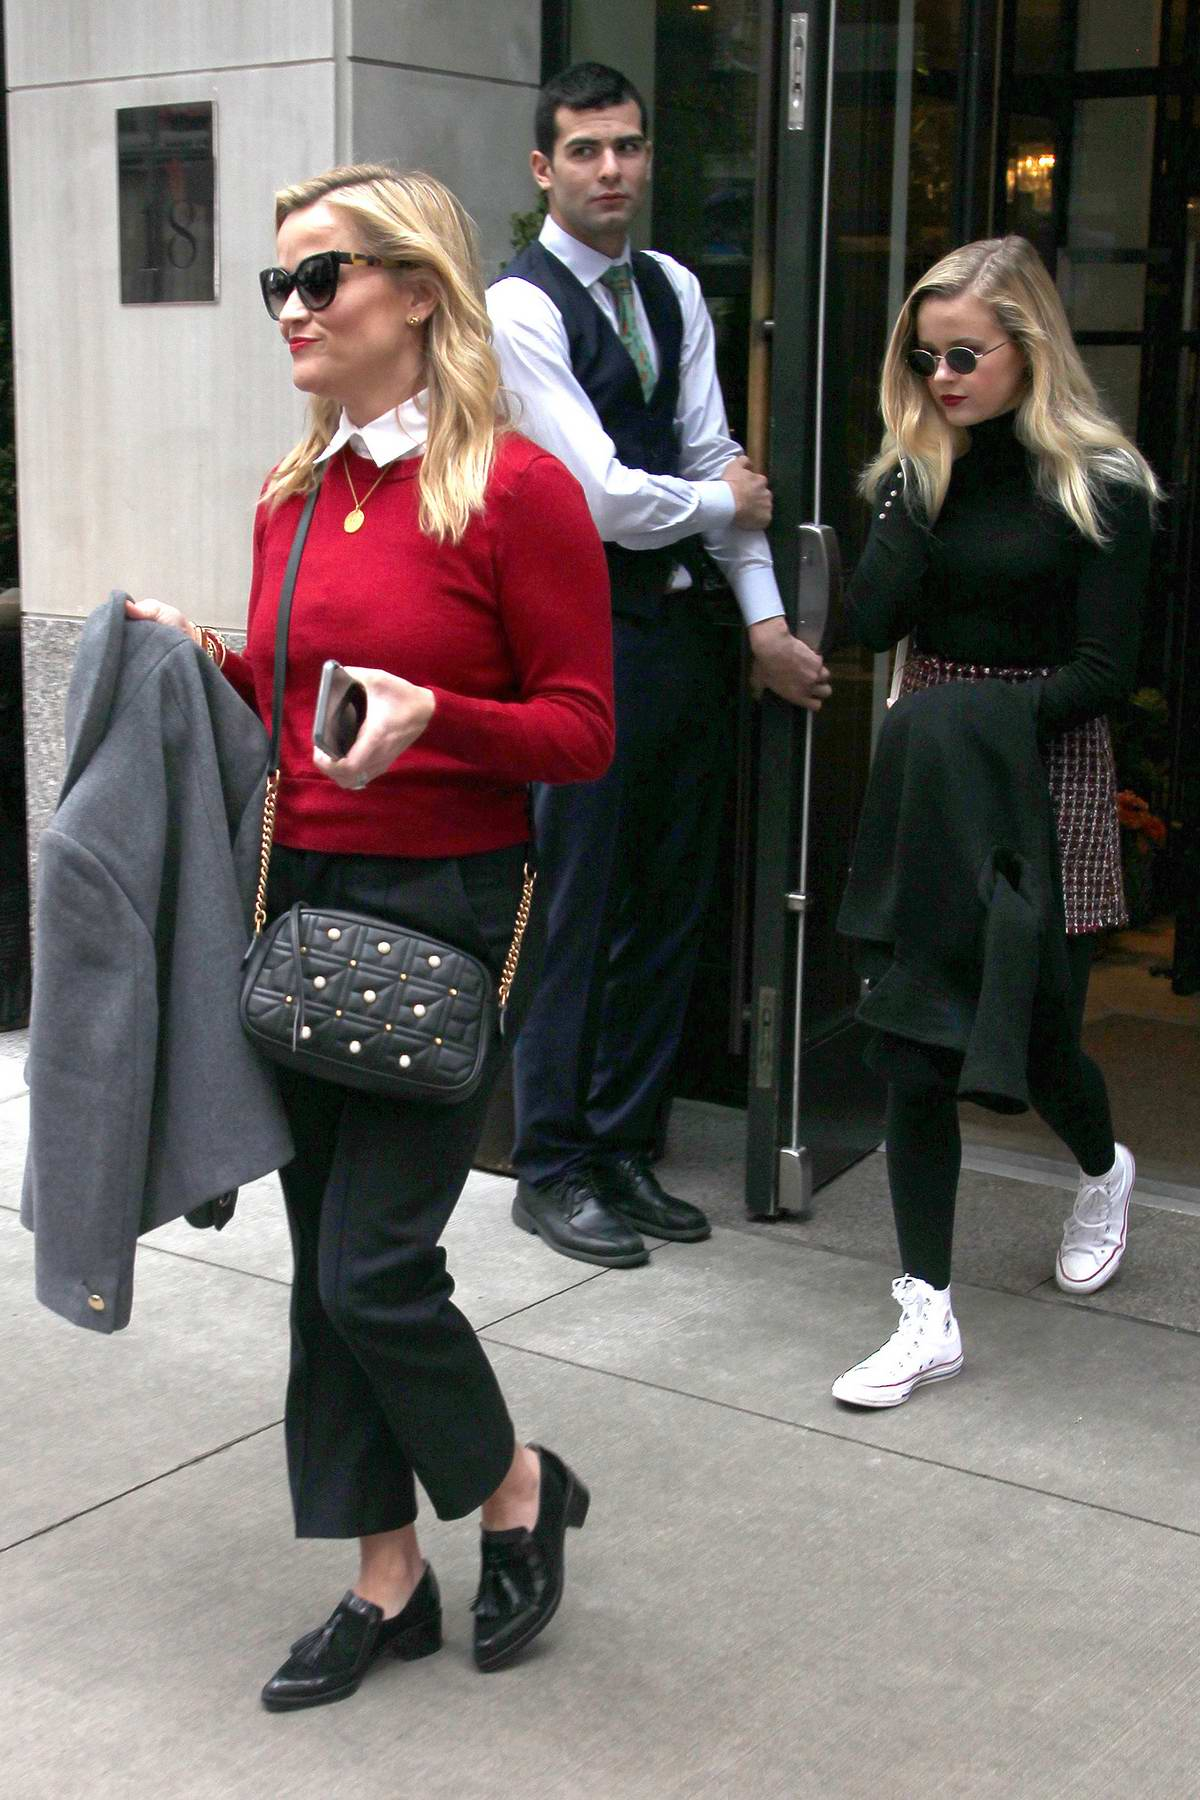 Reese Witherspoon with daughter Ava Phillippe and Zoe Kravitz step out of their hotel for a day out in New York City